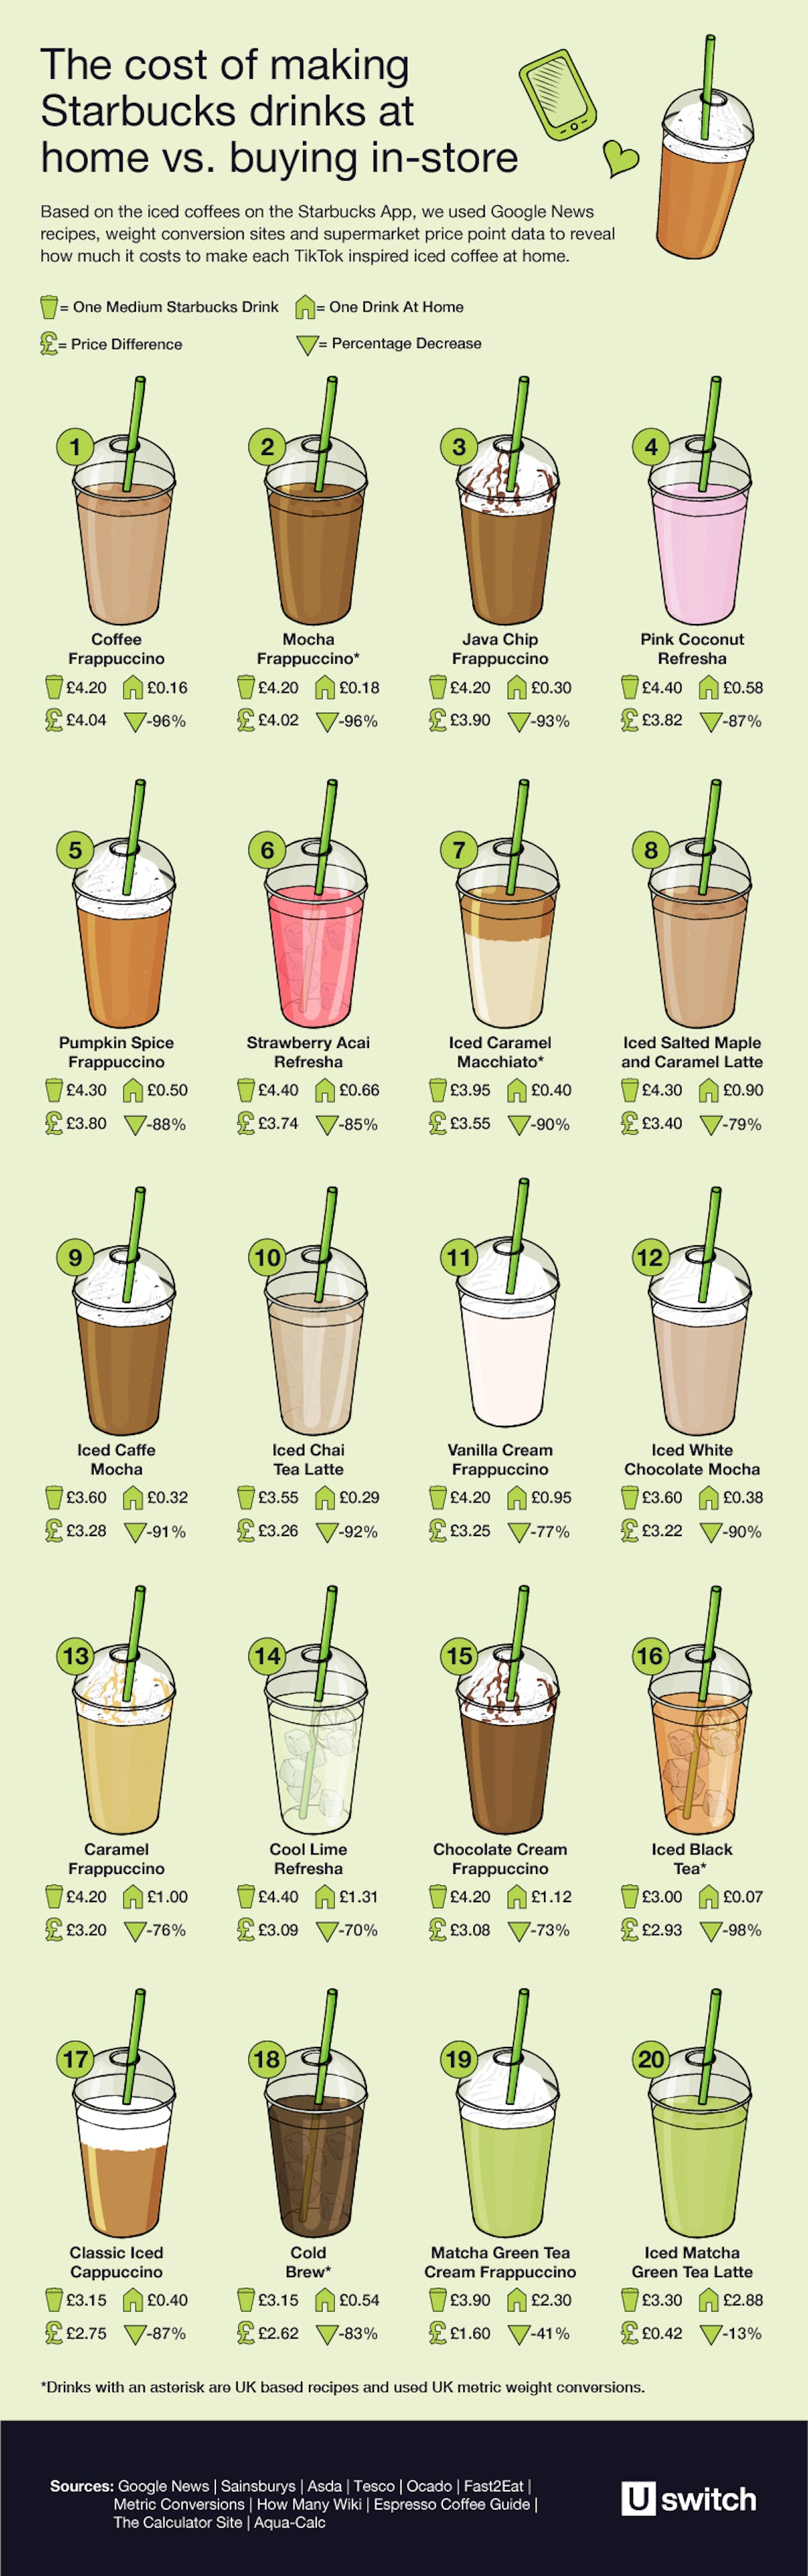 Graphic of the cost of making Starbucks drinks at home vs buying in-store